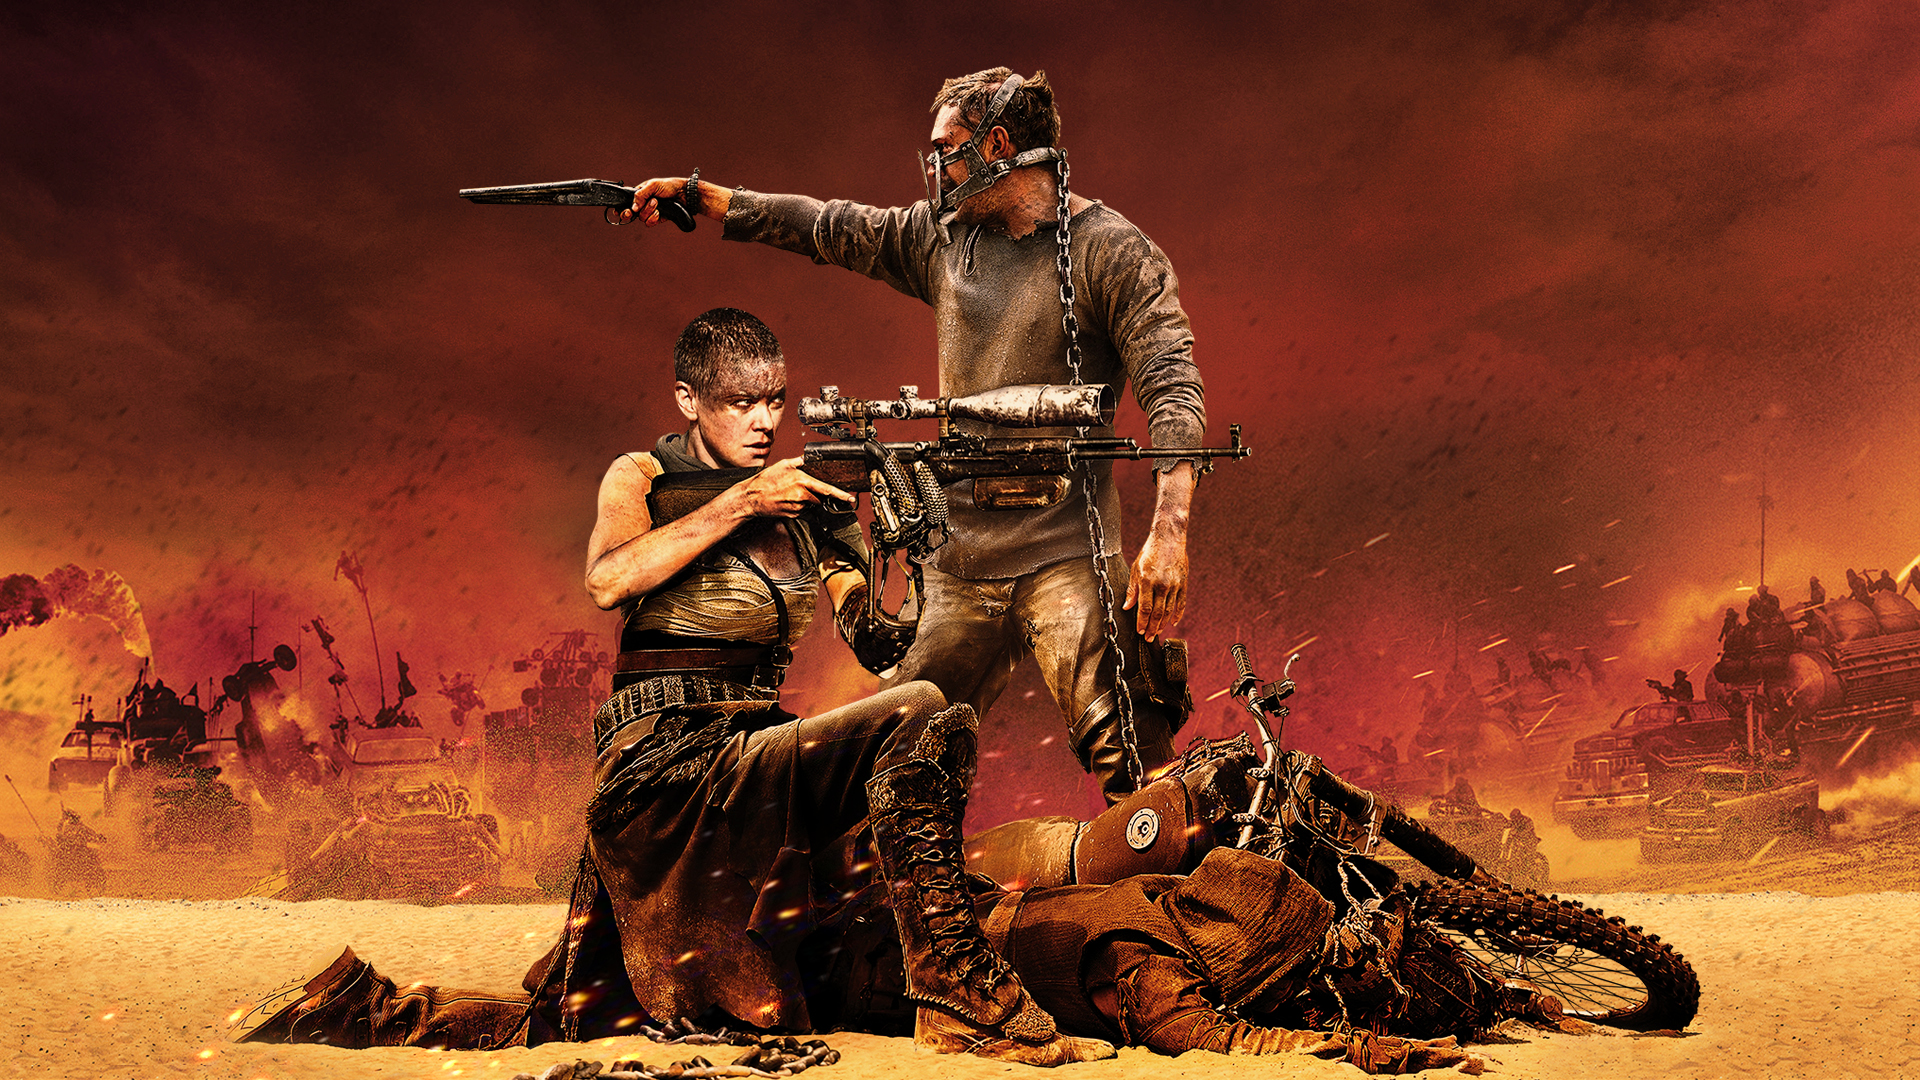 Mad Max Fury Road Wallpaper 1920x1080 by sachso74 deviantart com